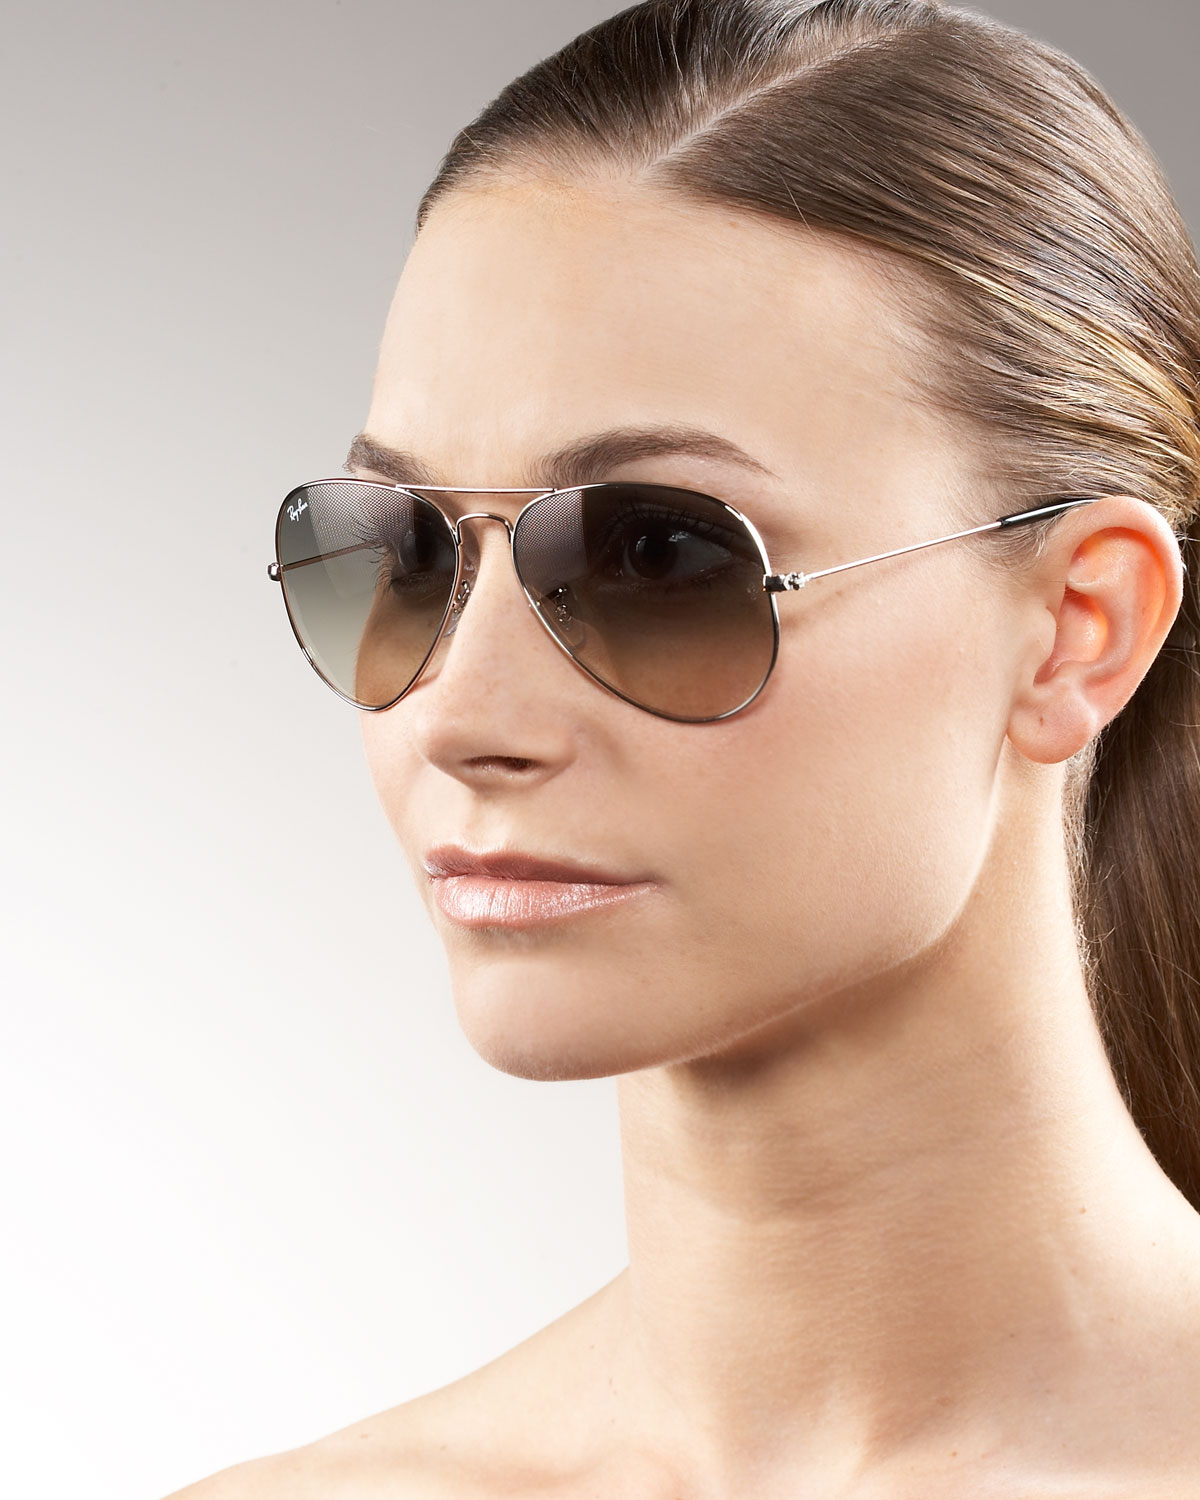 3462b7c2d2 Lyst - Ray-Ban Classic Aviator Sunglasses in Brown